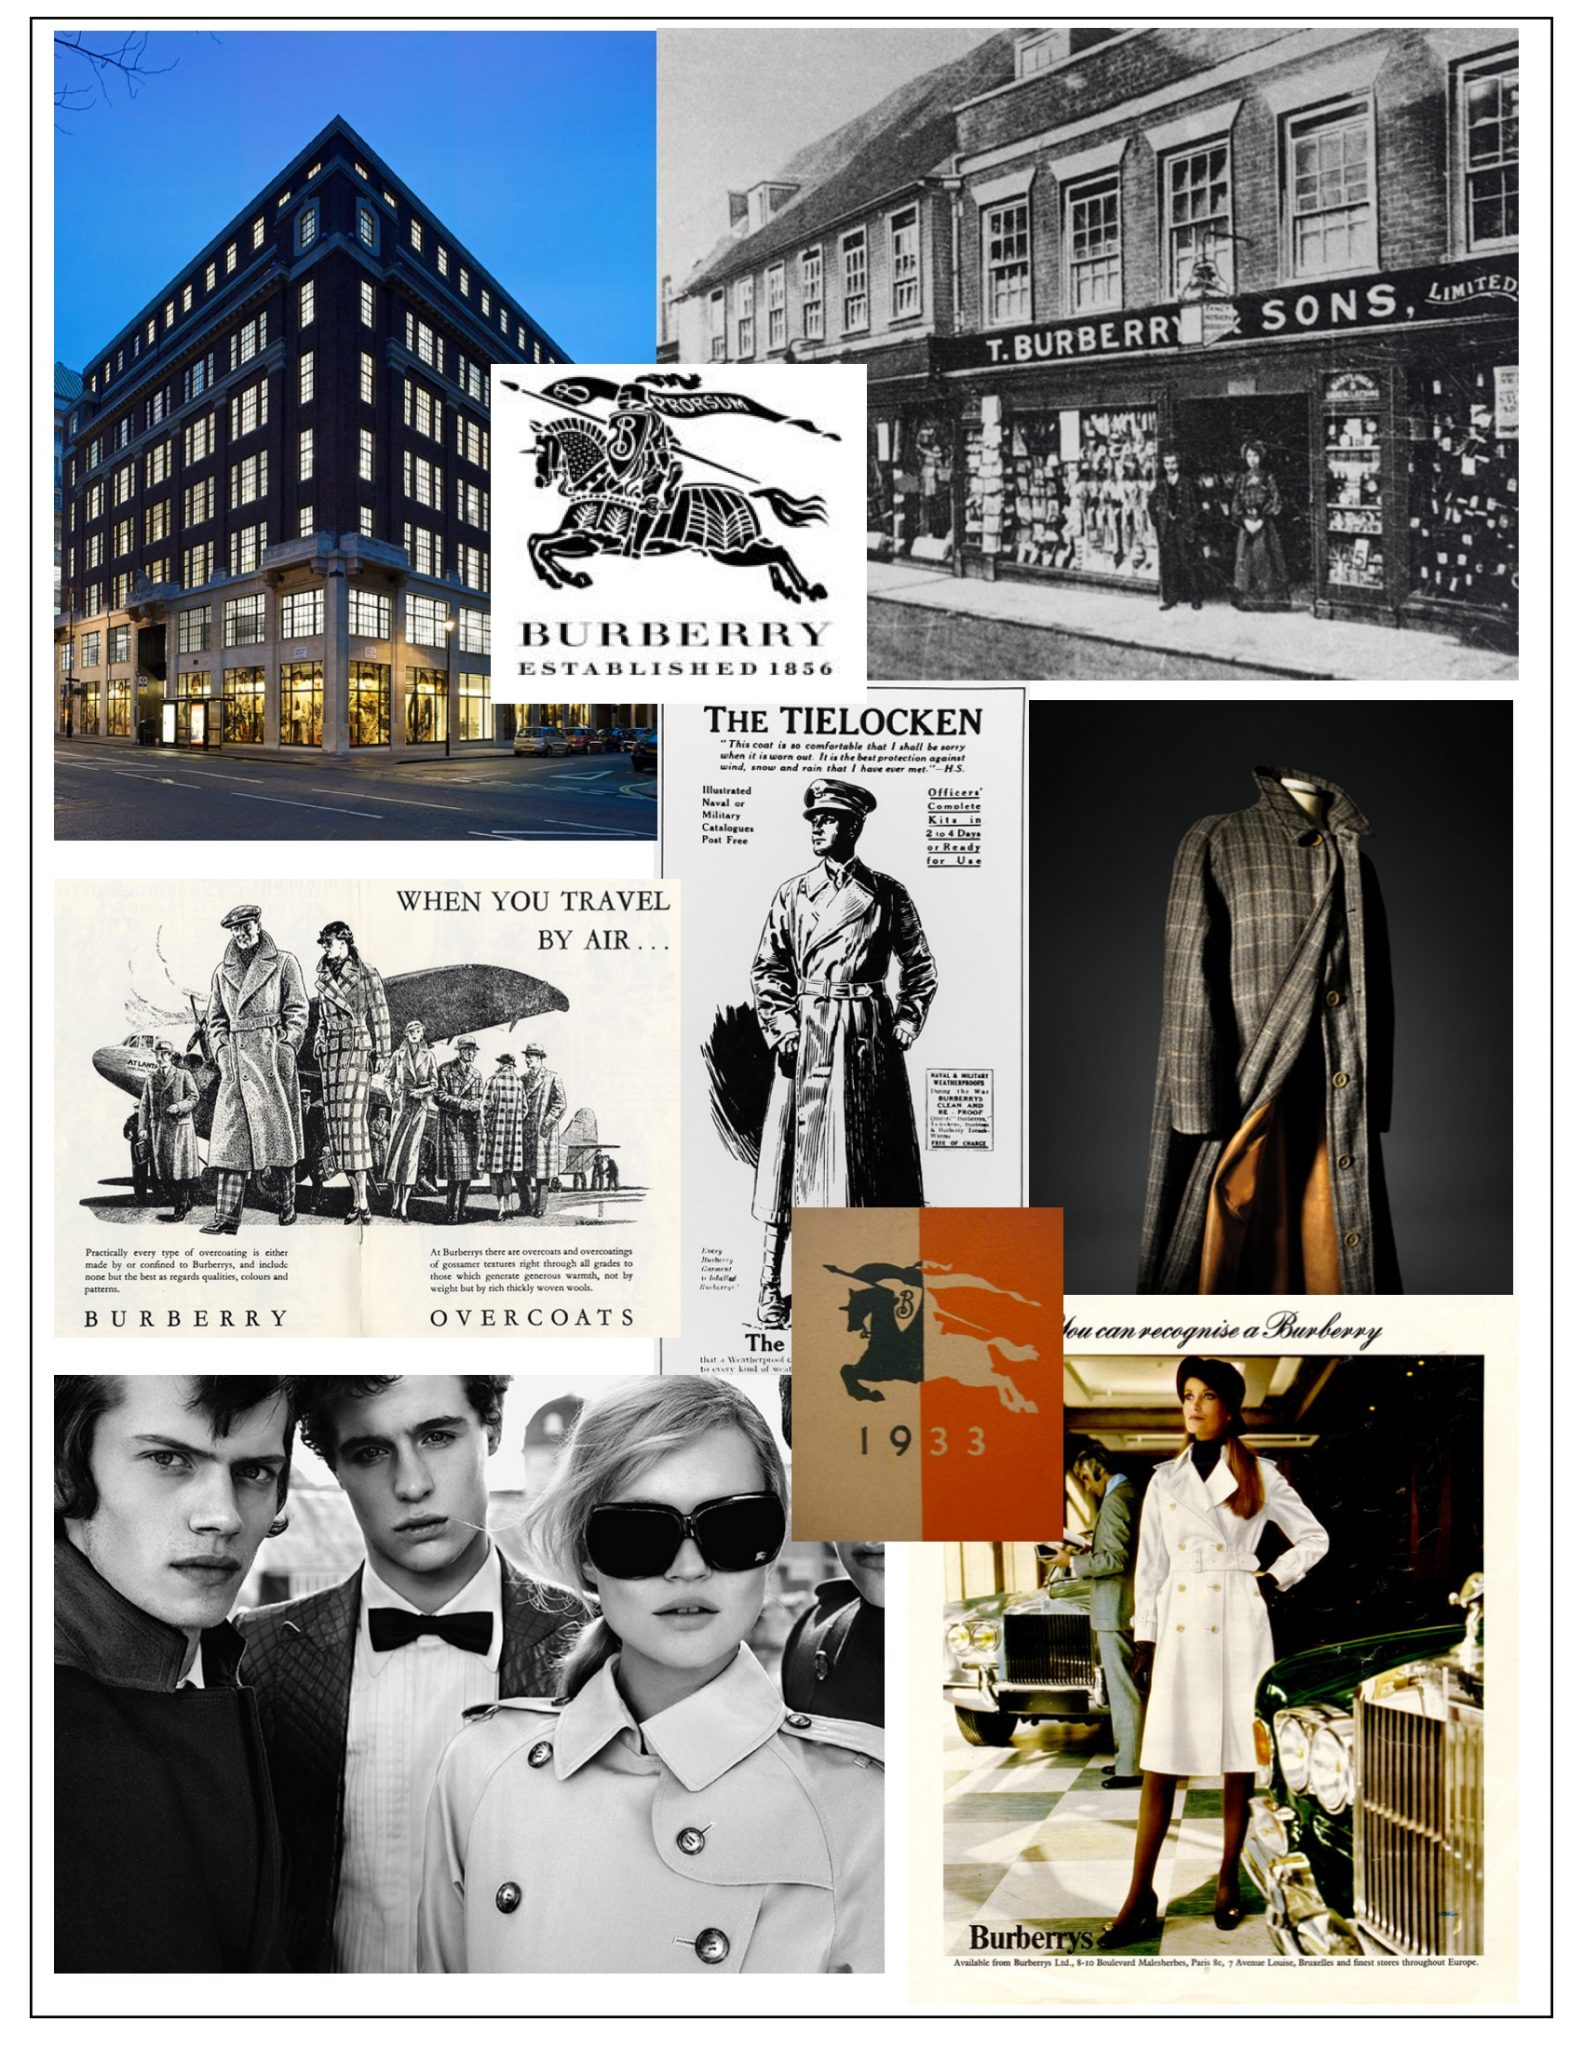 history of burberry Founded by thomas burberry in 1856, discover the history of the brand with a timeline from the heritage archive.